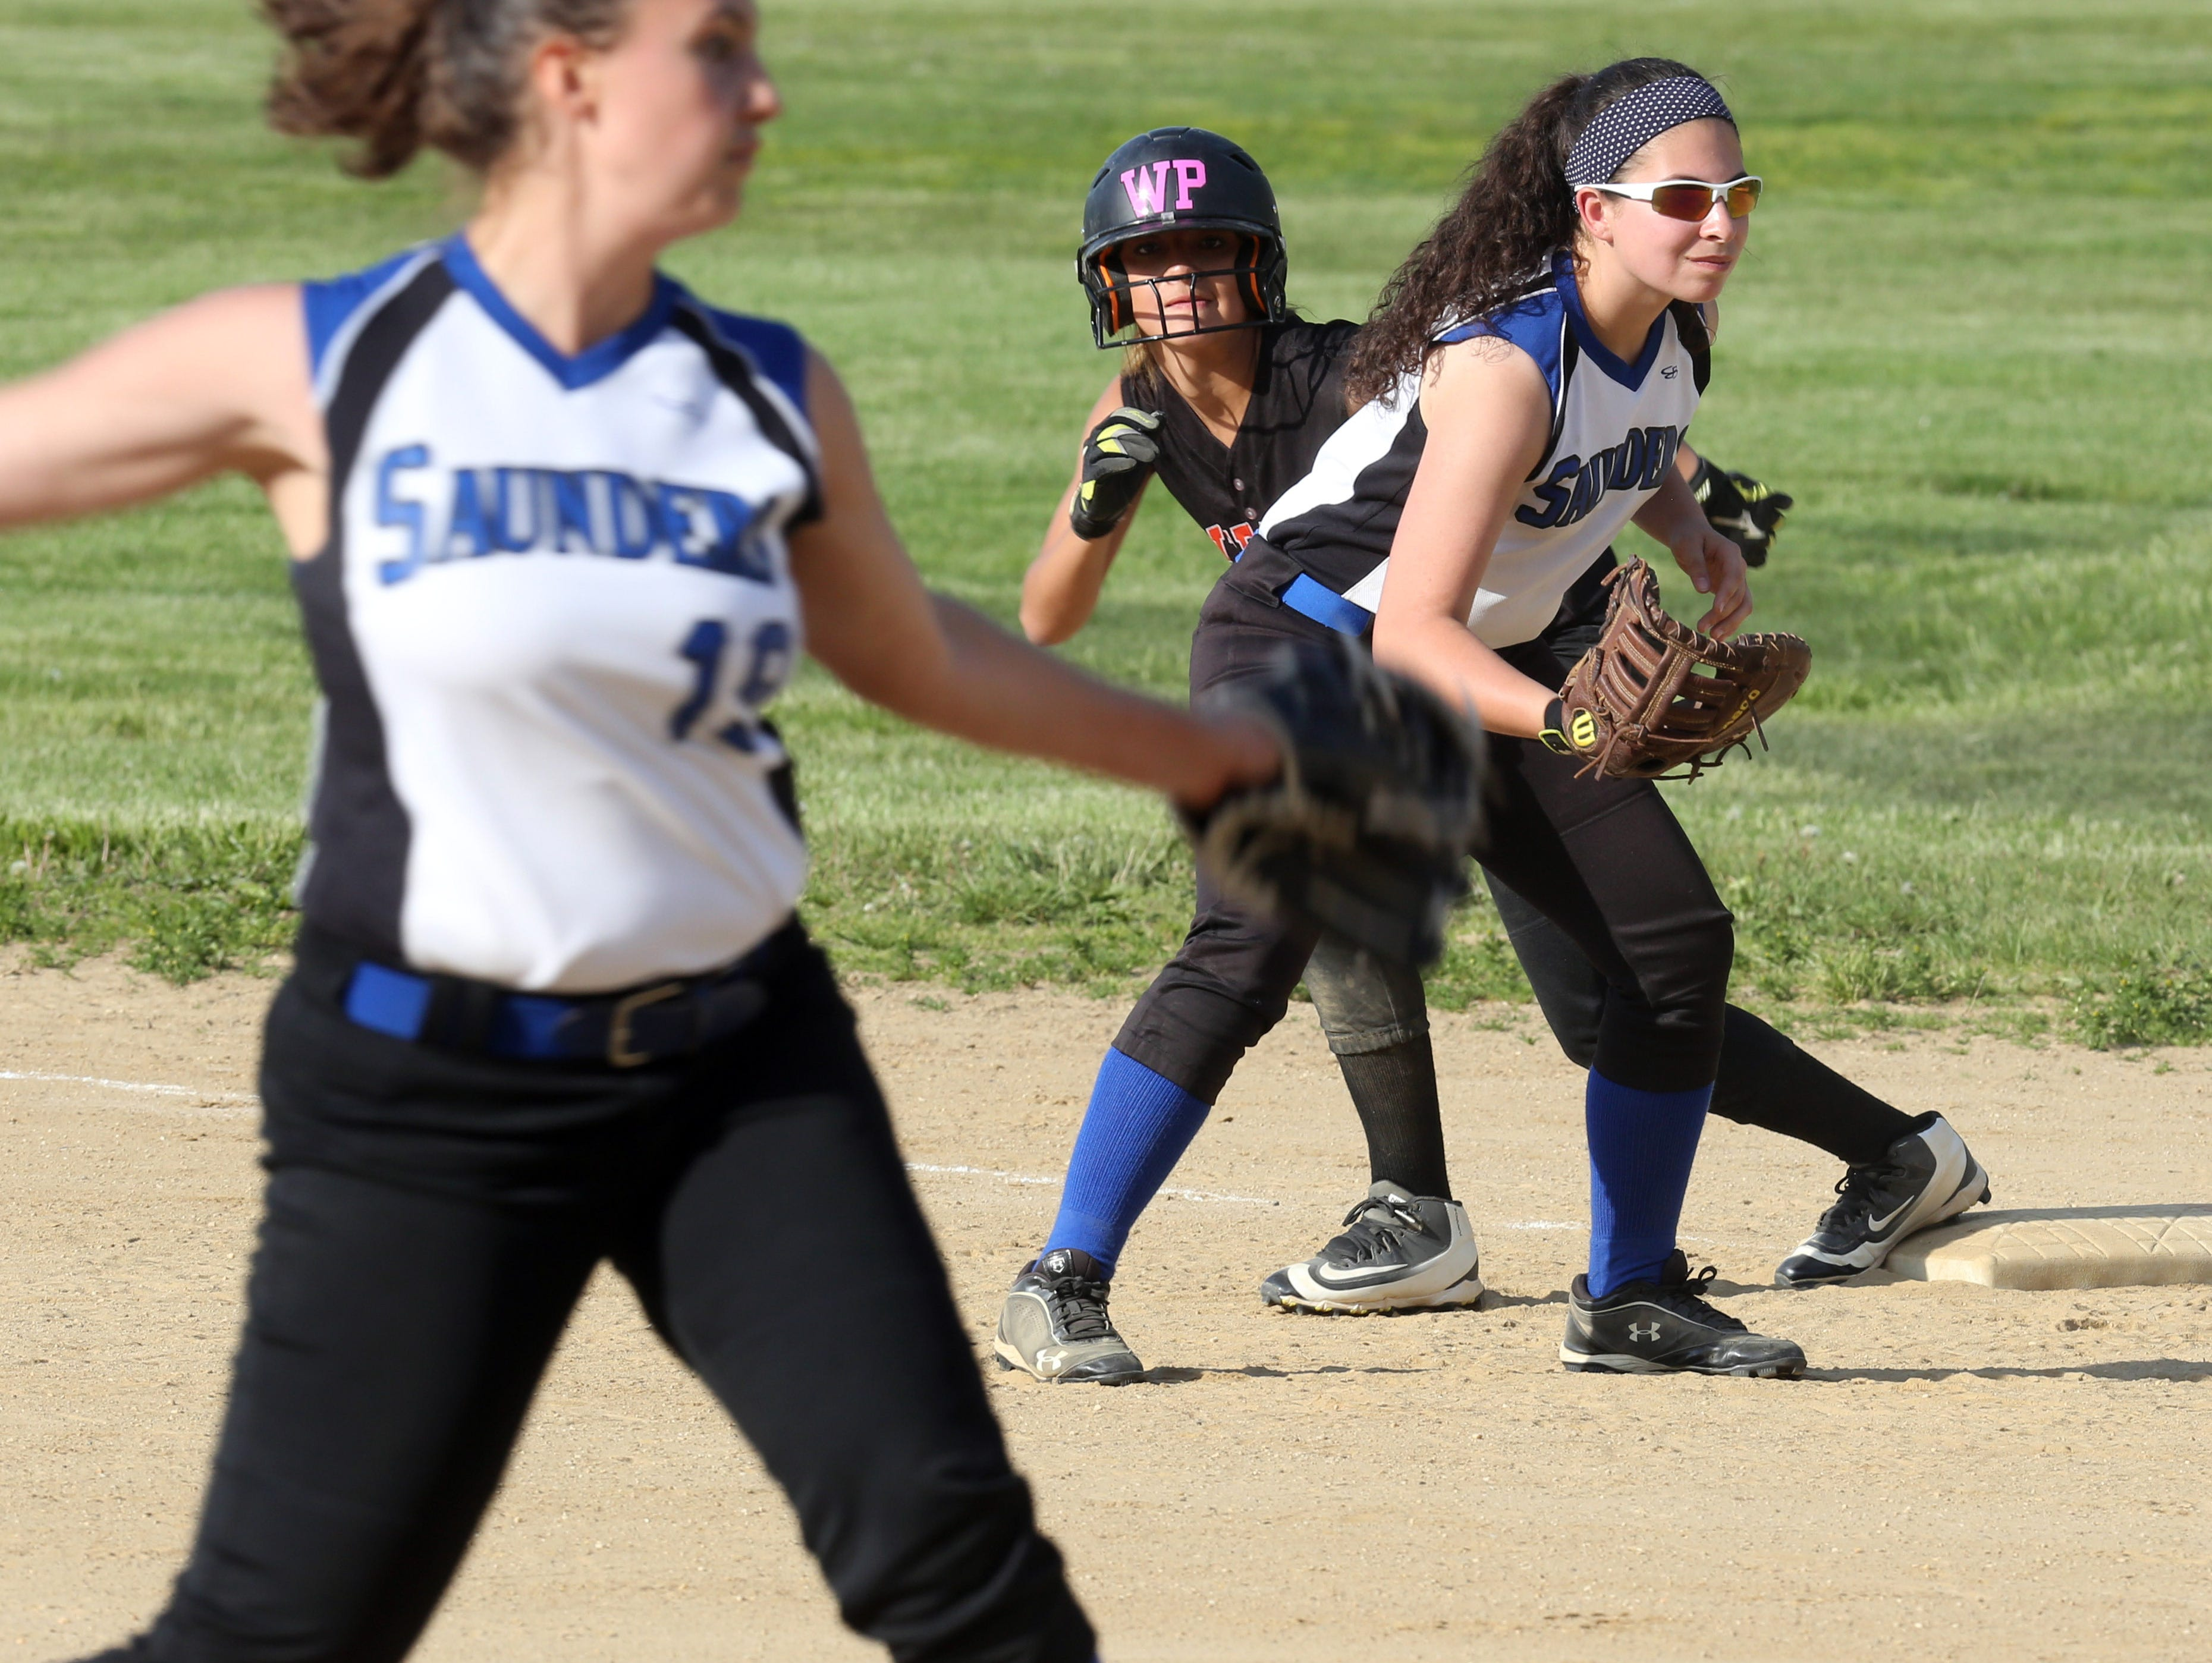 Saunders defeats White Plains 4-2 during Class AA first round playoff softball game at Saunders High School in Yonkers on May 20, 2016.